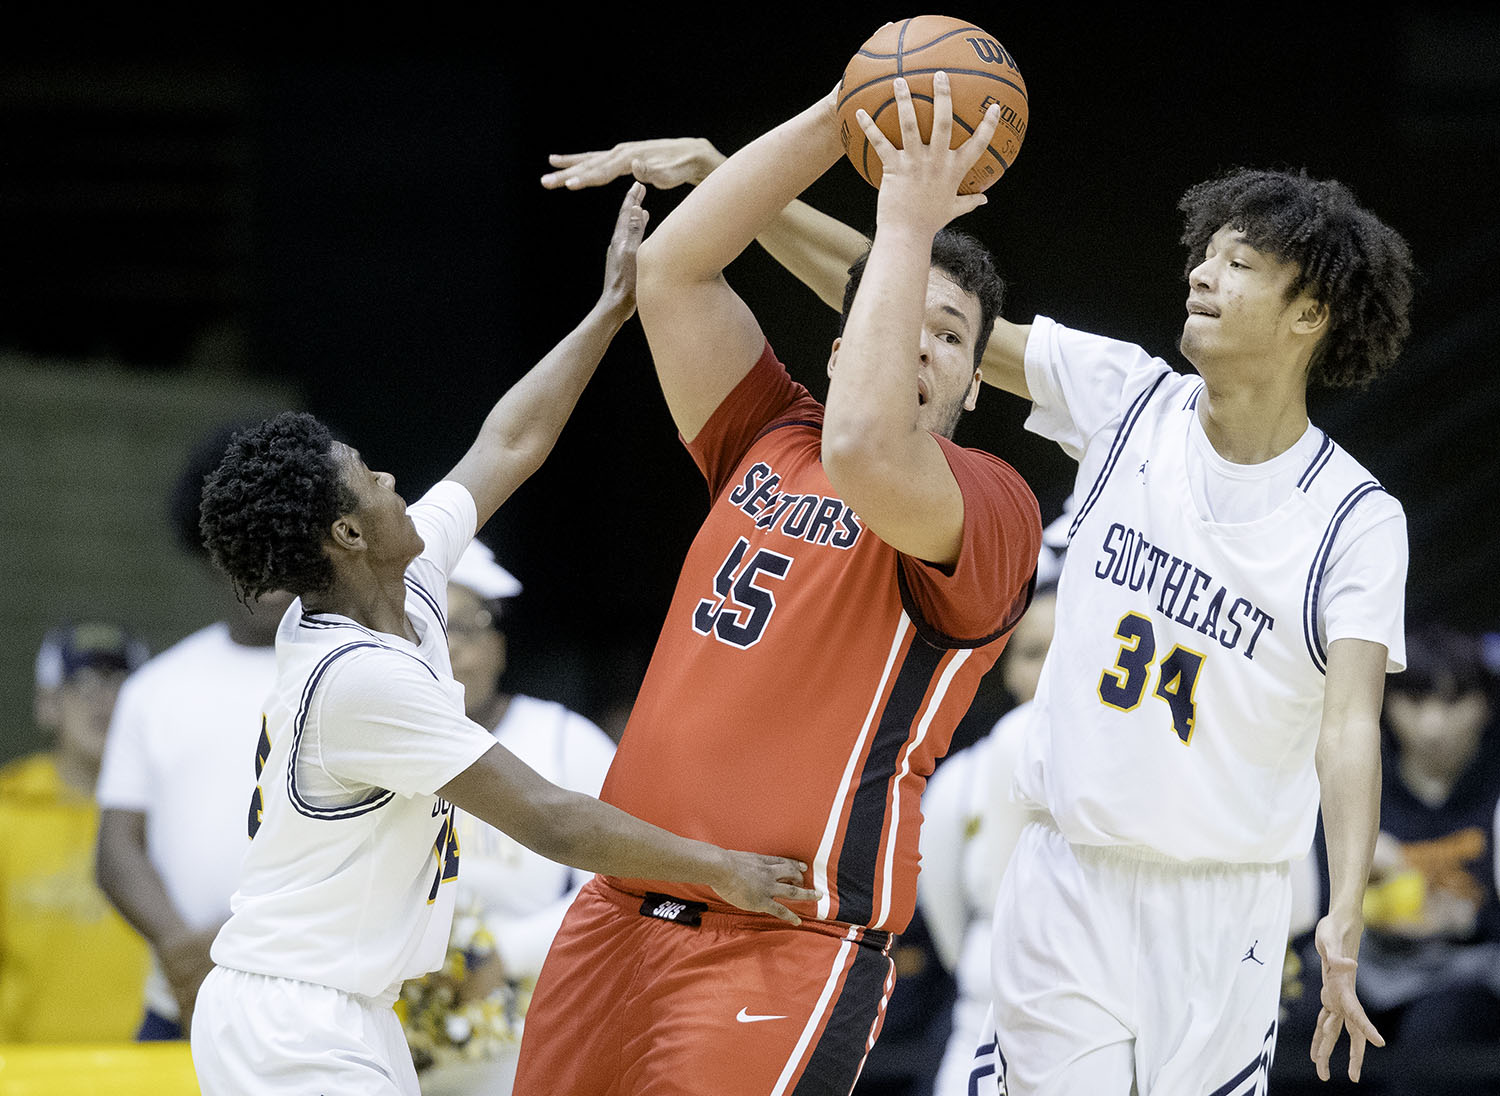 Springfield's Nate Borders looks for an open teammate under pressure from Southeast's Michael Taylor during the Boys City Tournament at the Bank of Springfield Center Thursday, Jan. 17, 2019.  [Ted Schurter/The State Journal-Register]